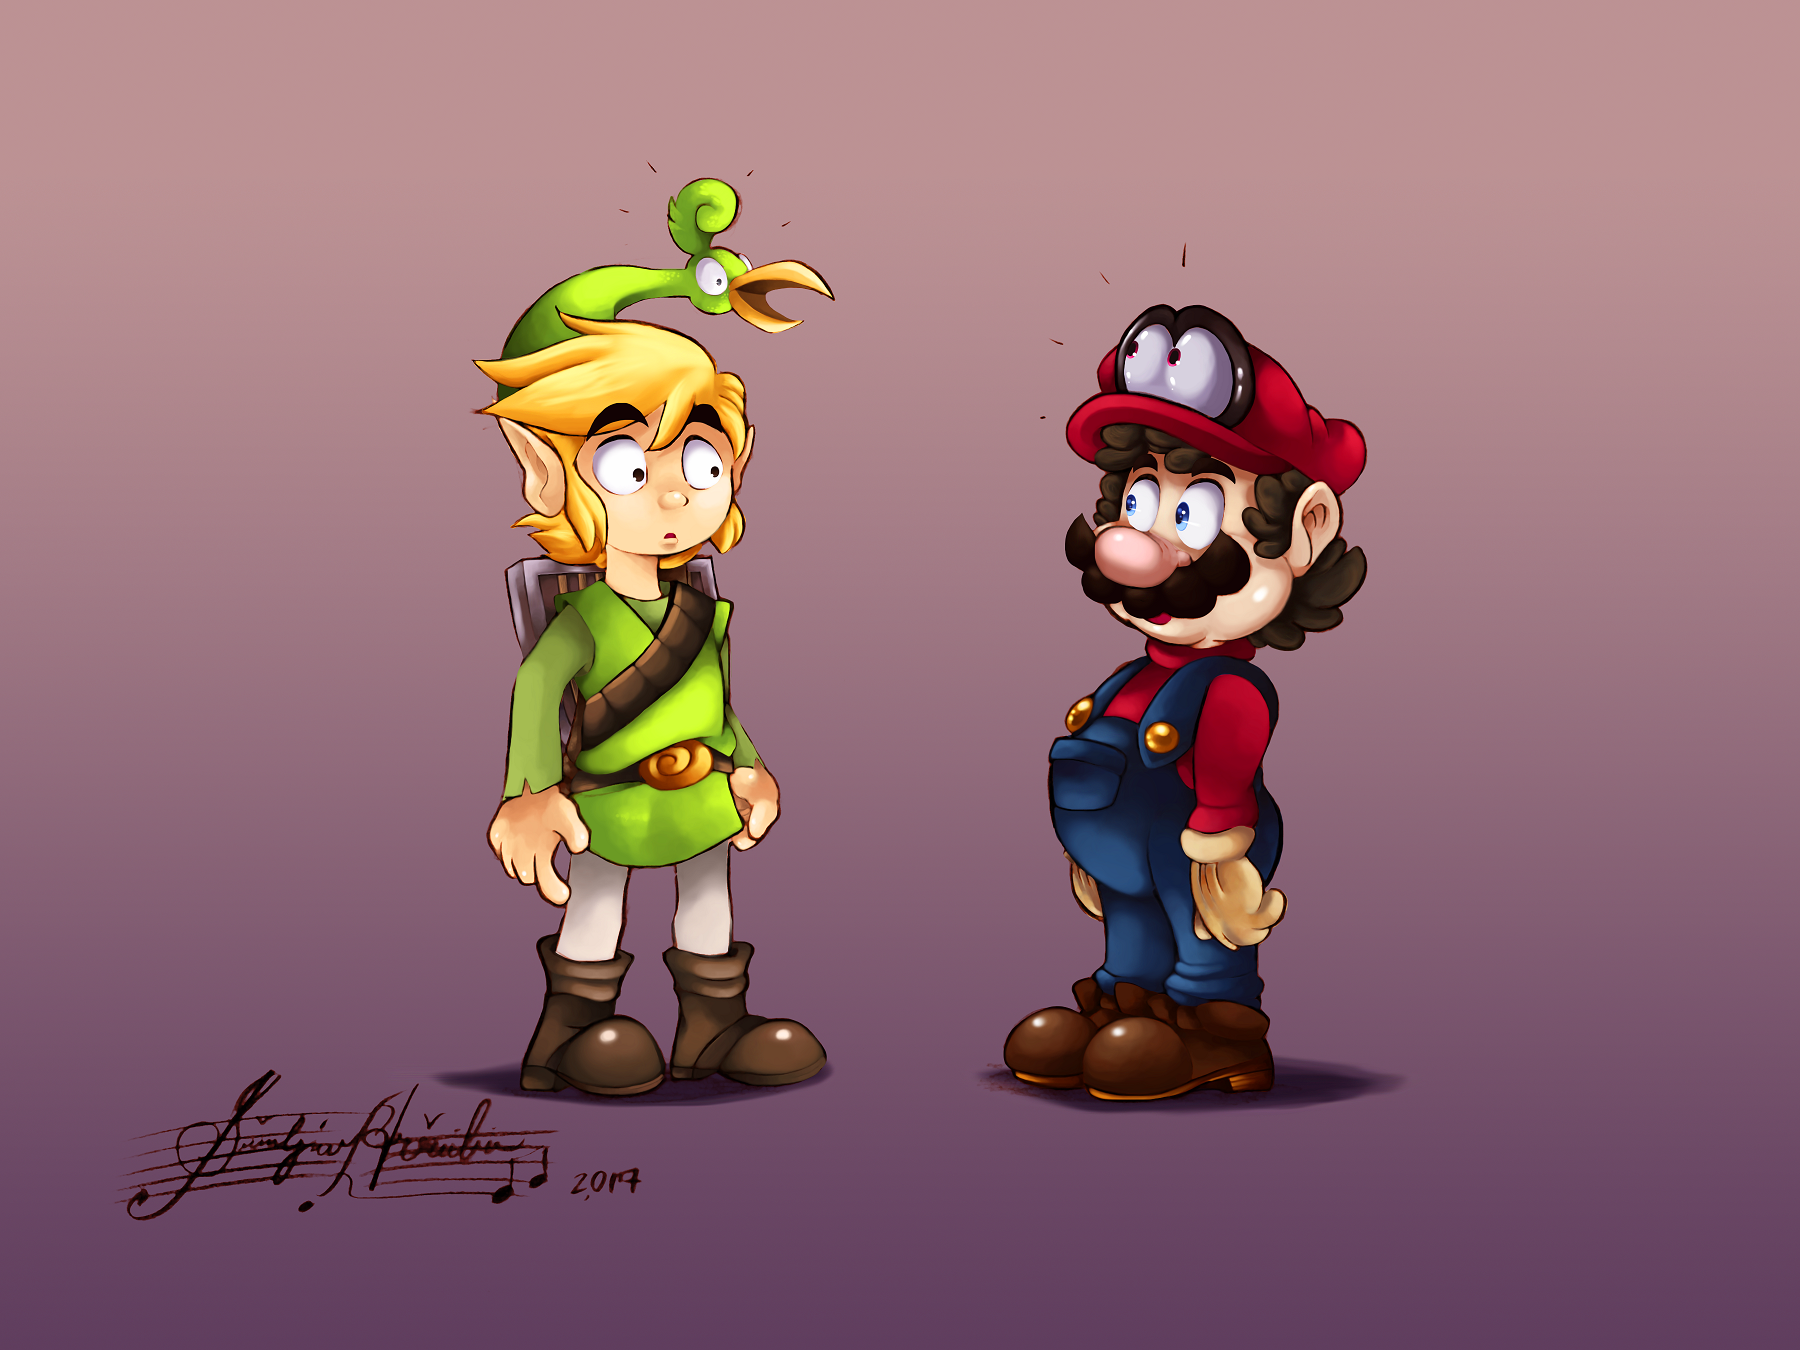 Video Game - Crossover  Link Mario The Legend Of Zelda: The Minish Cap Super Mario Odyssey Ezlo (The Legend Of Zelda) Wallpaper